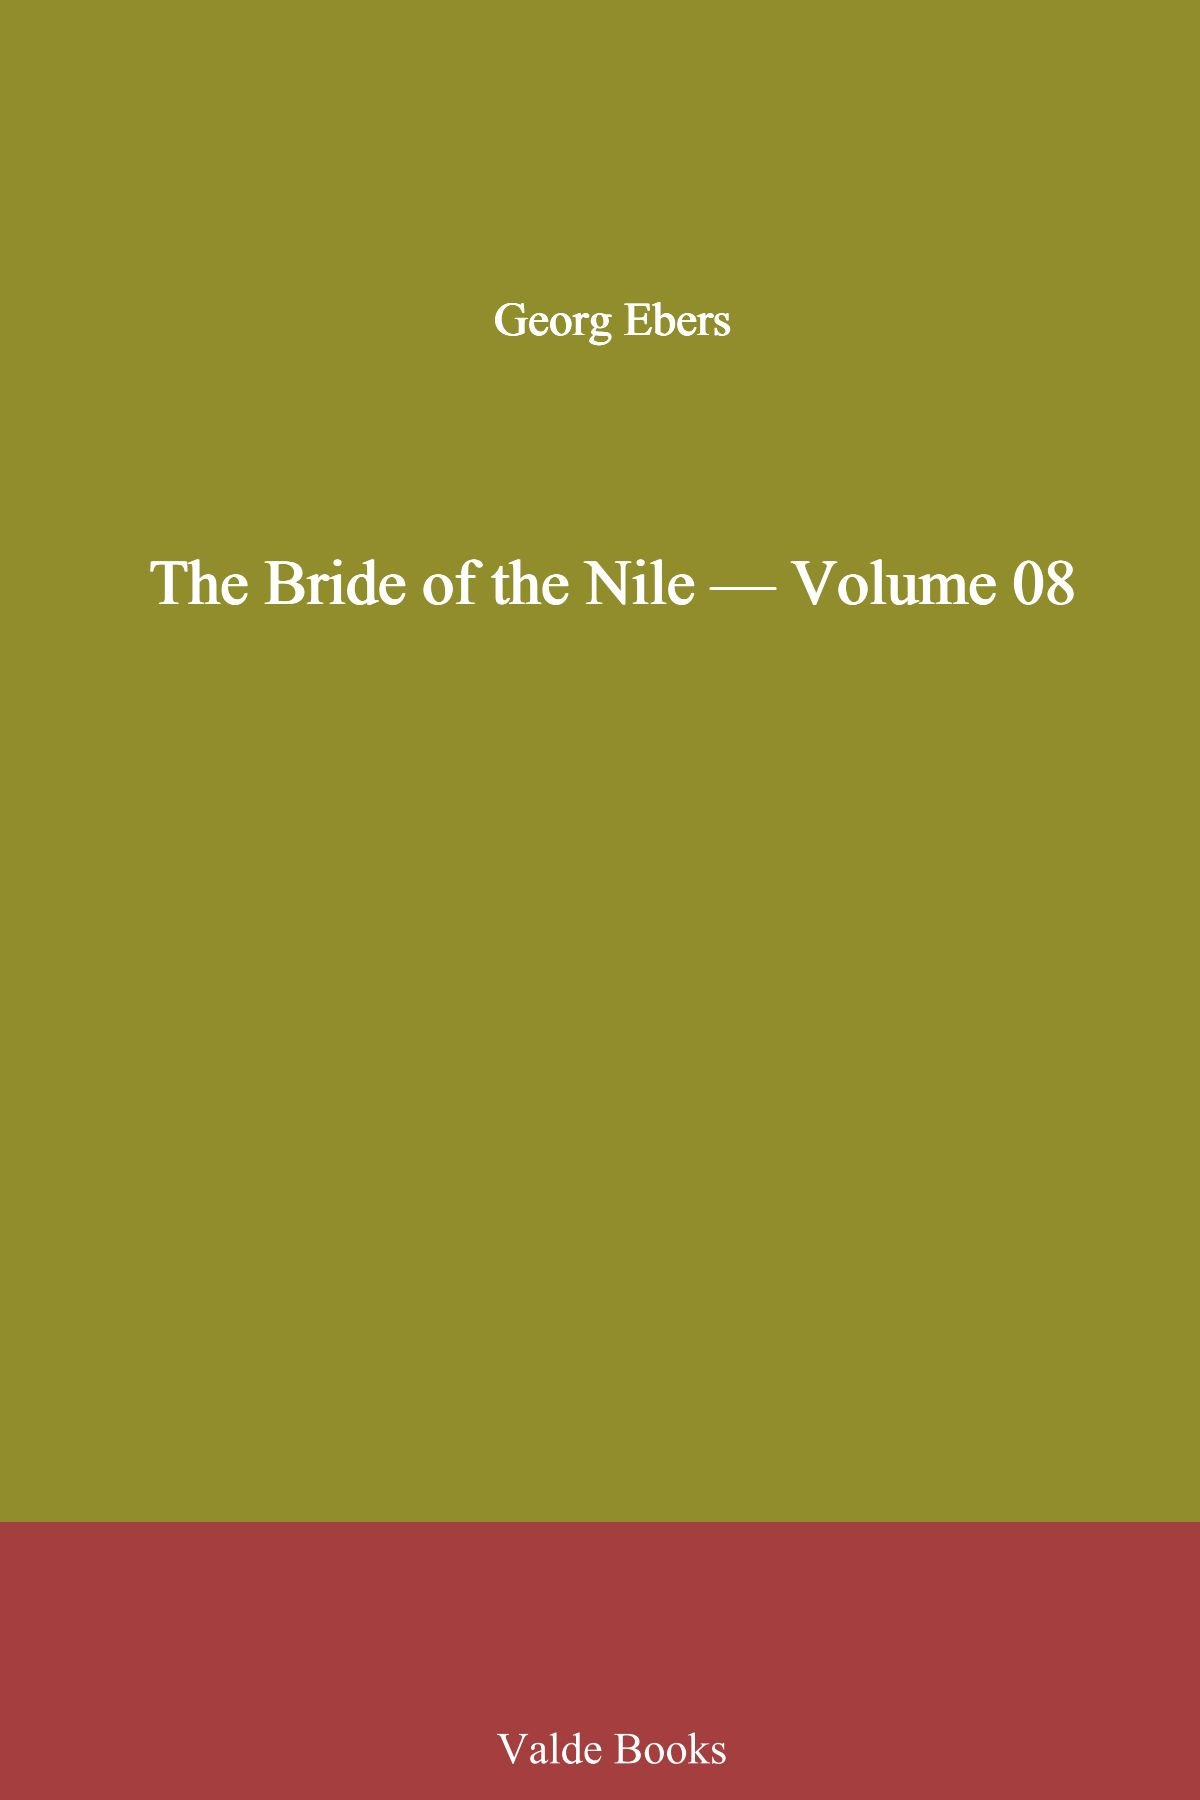 The Bride of the Nile — Volume 08